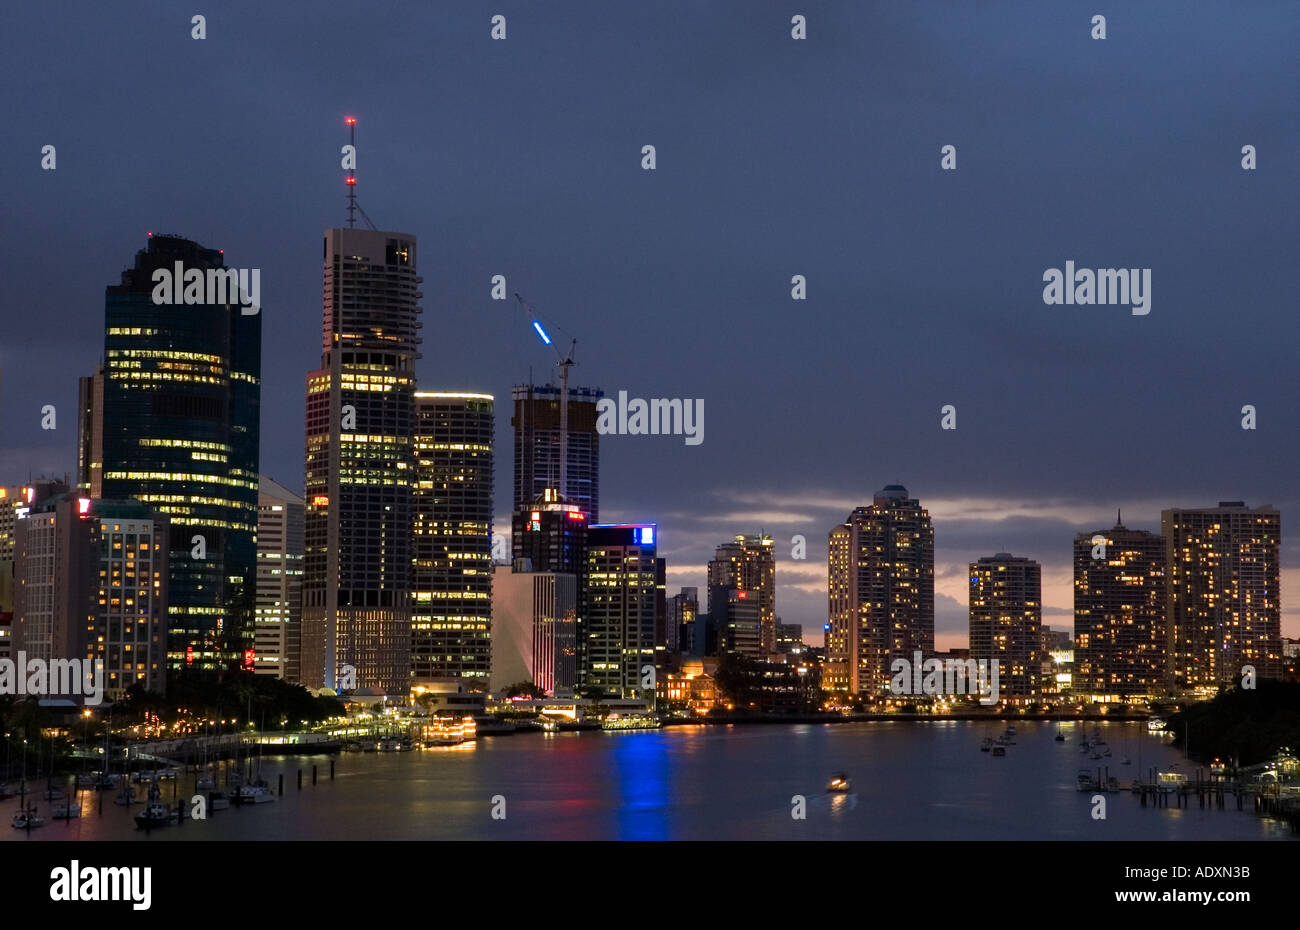 Brisbane at night 3753 - Stock Image